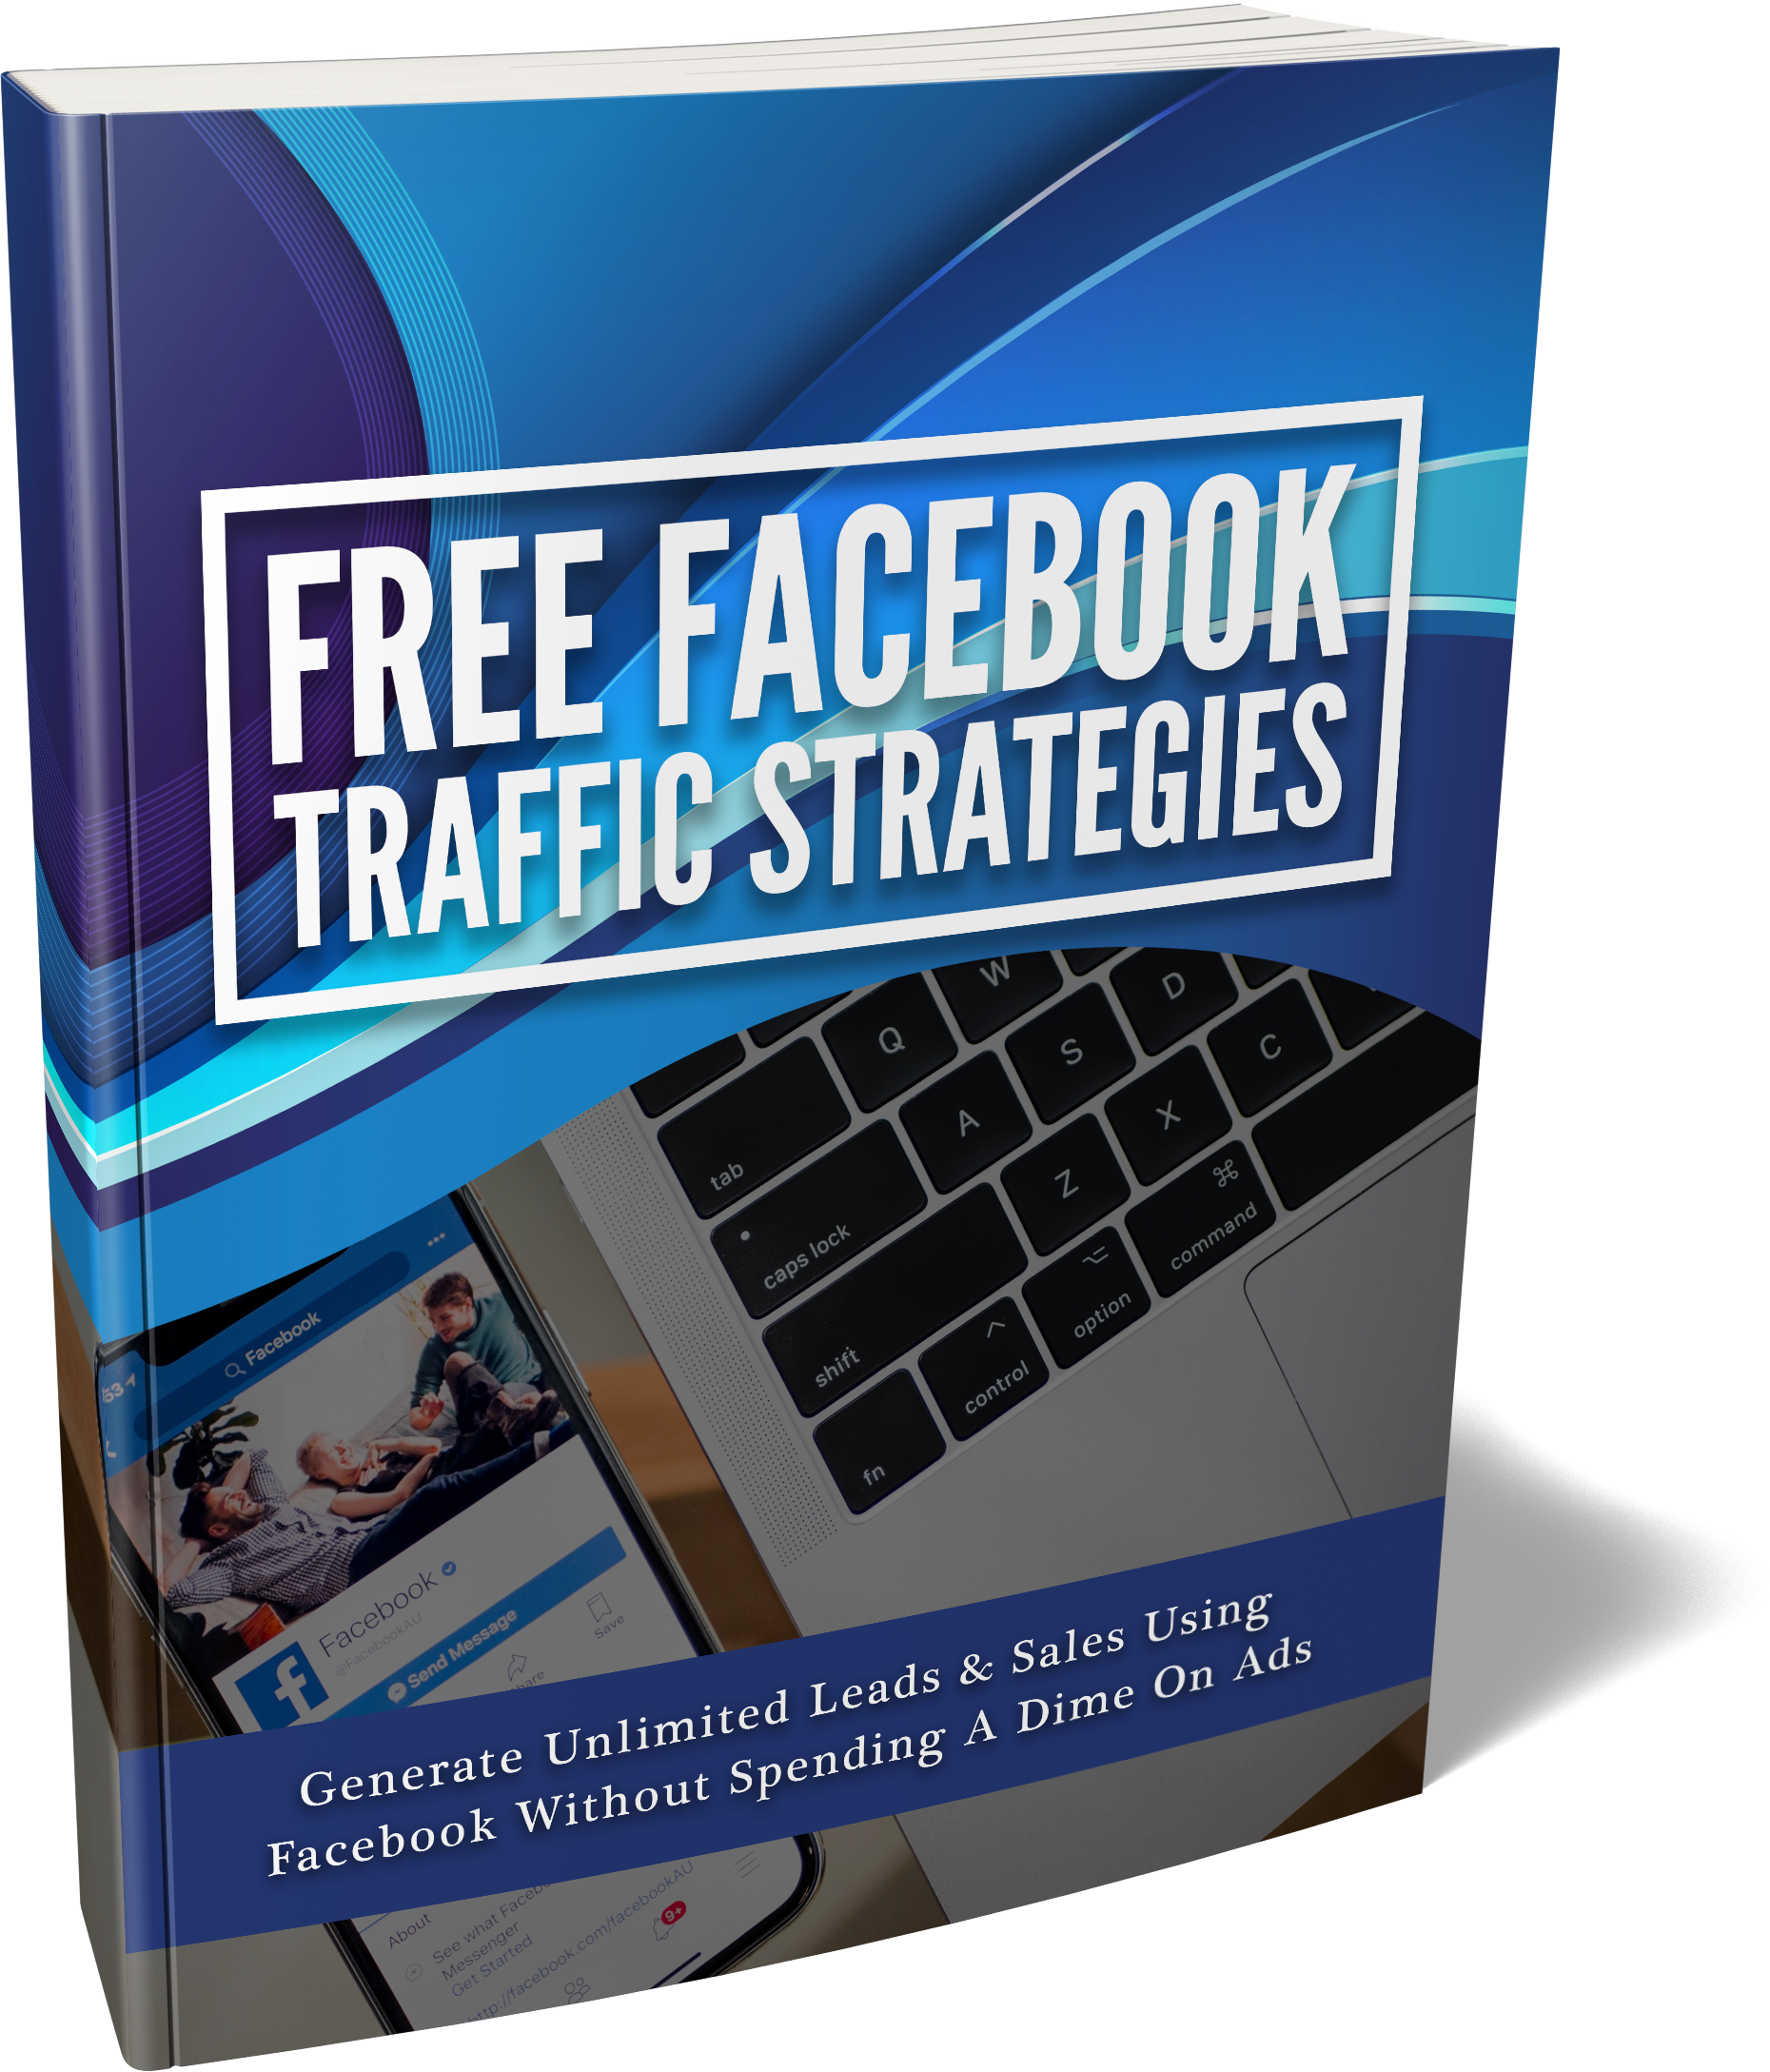 Free Facebook Traffic Strategies